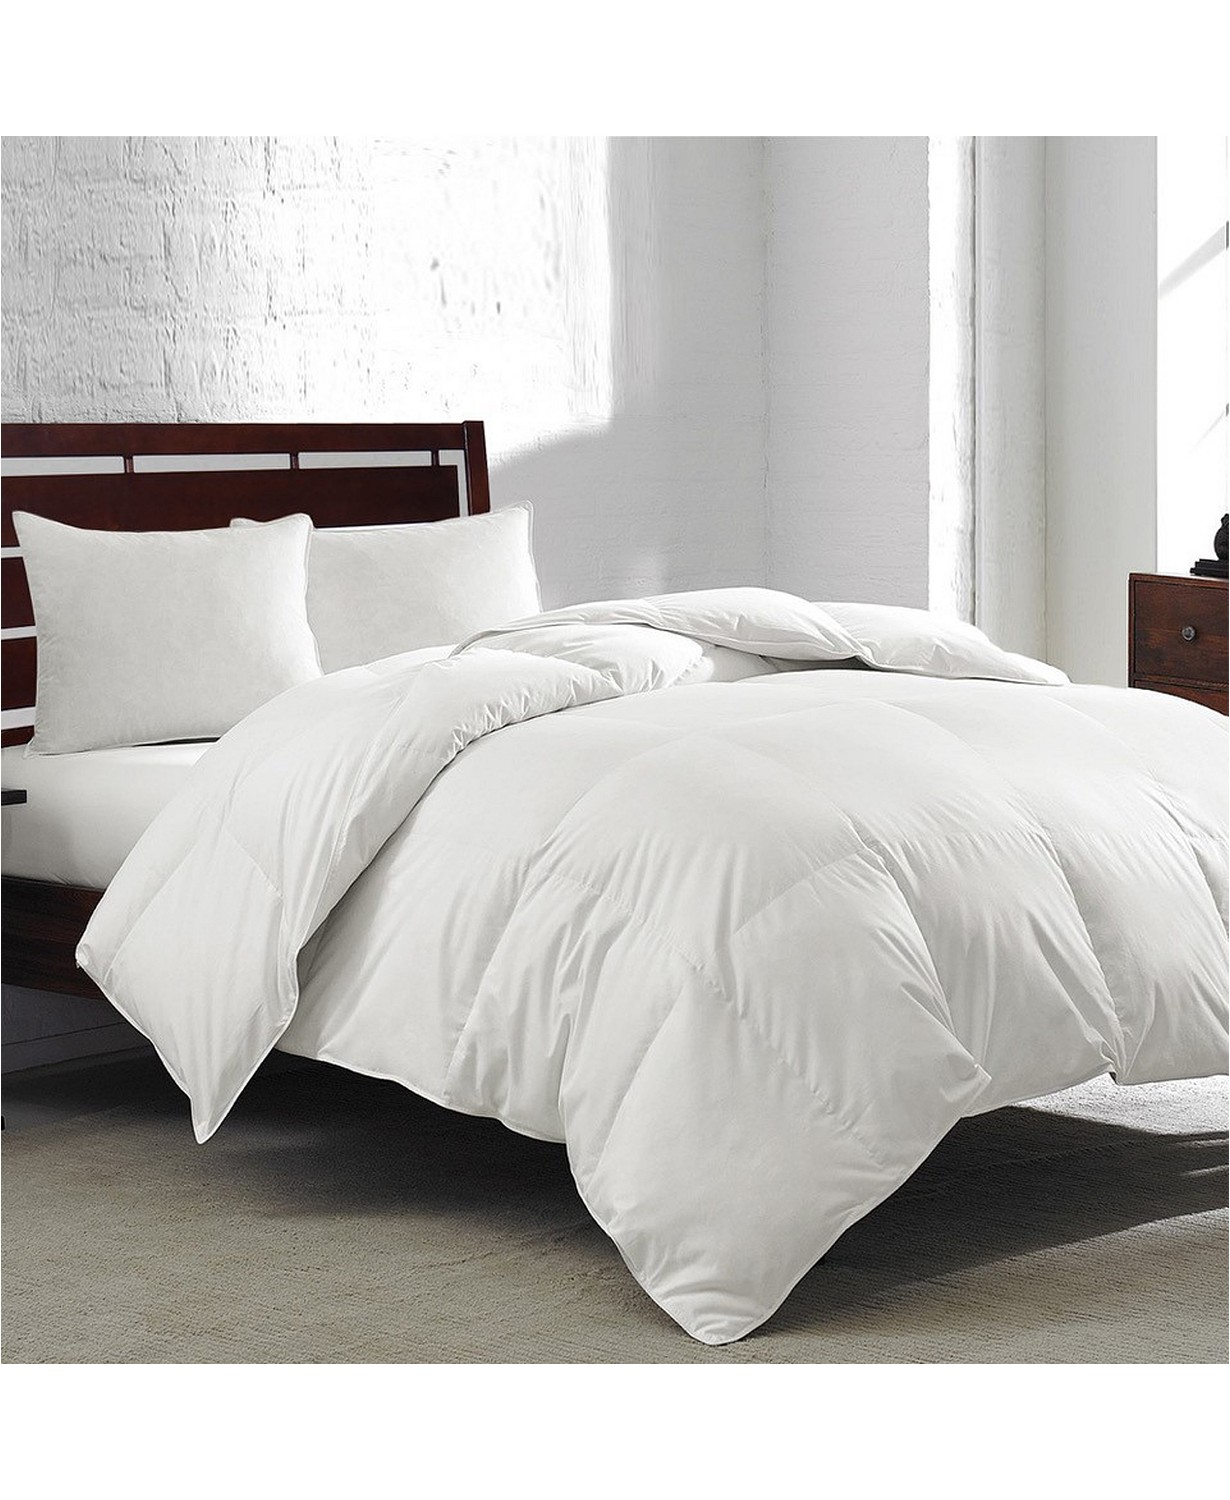 Royal Luxe Goose Feather & Down 240TC Comforter (Full/Queen)